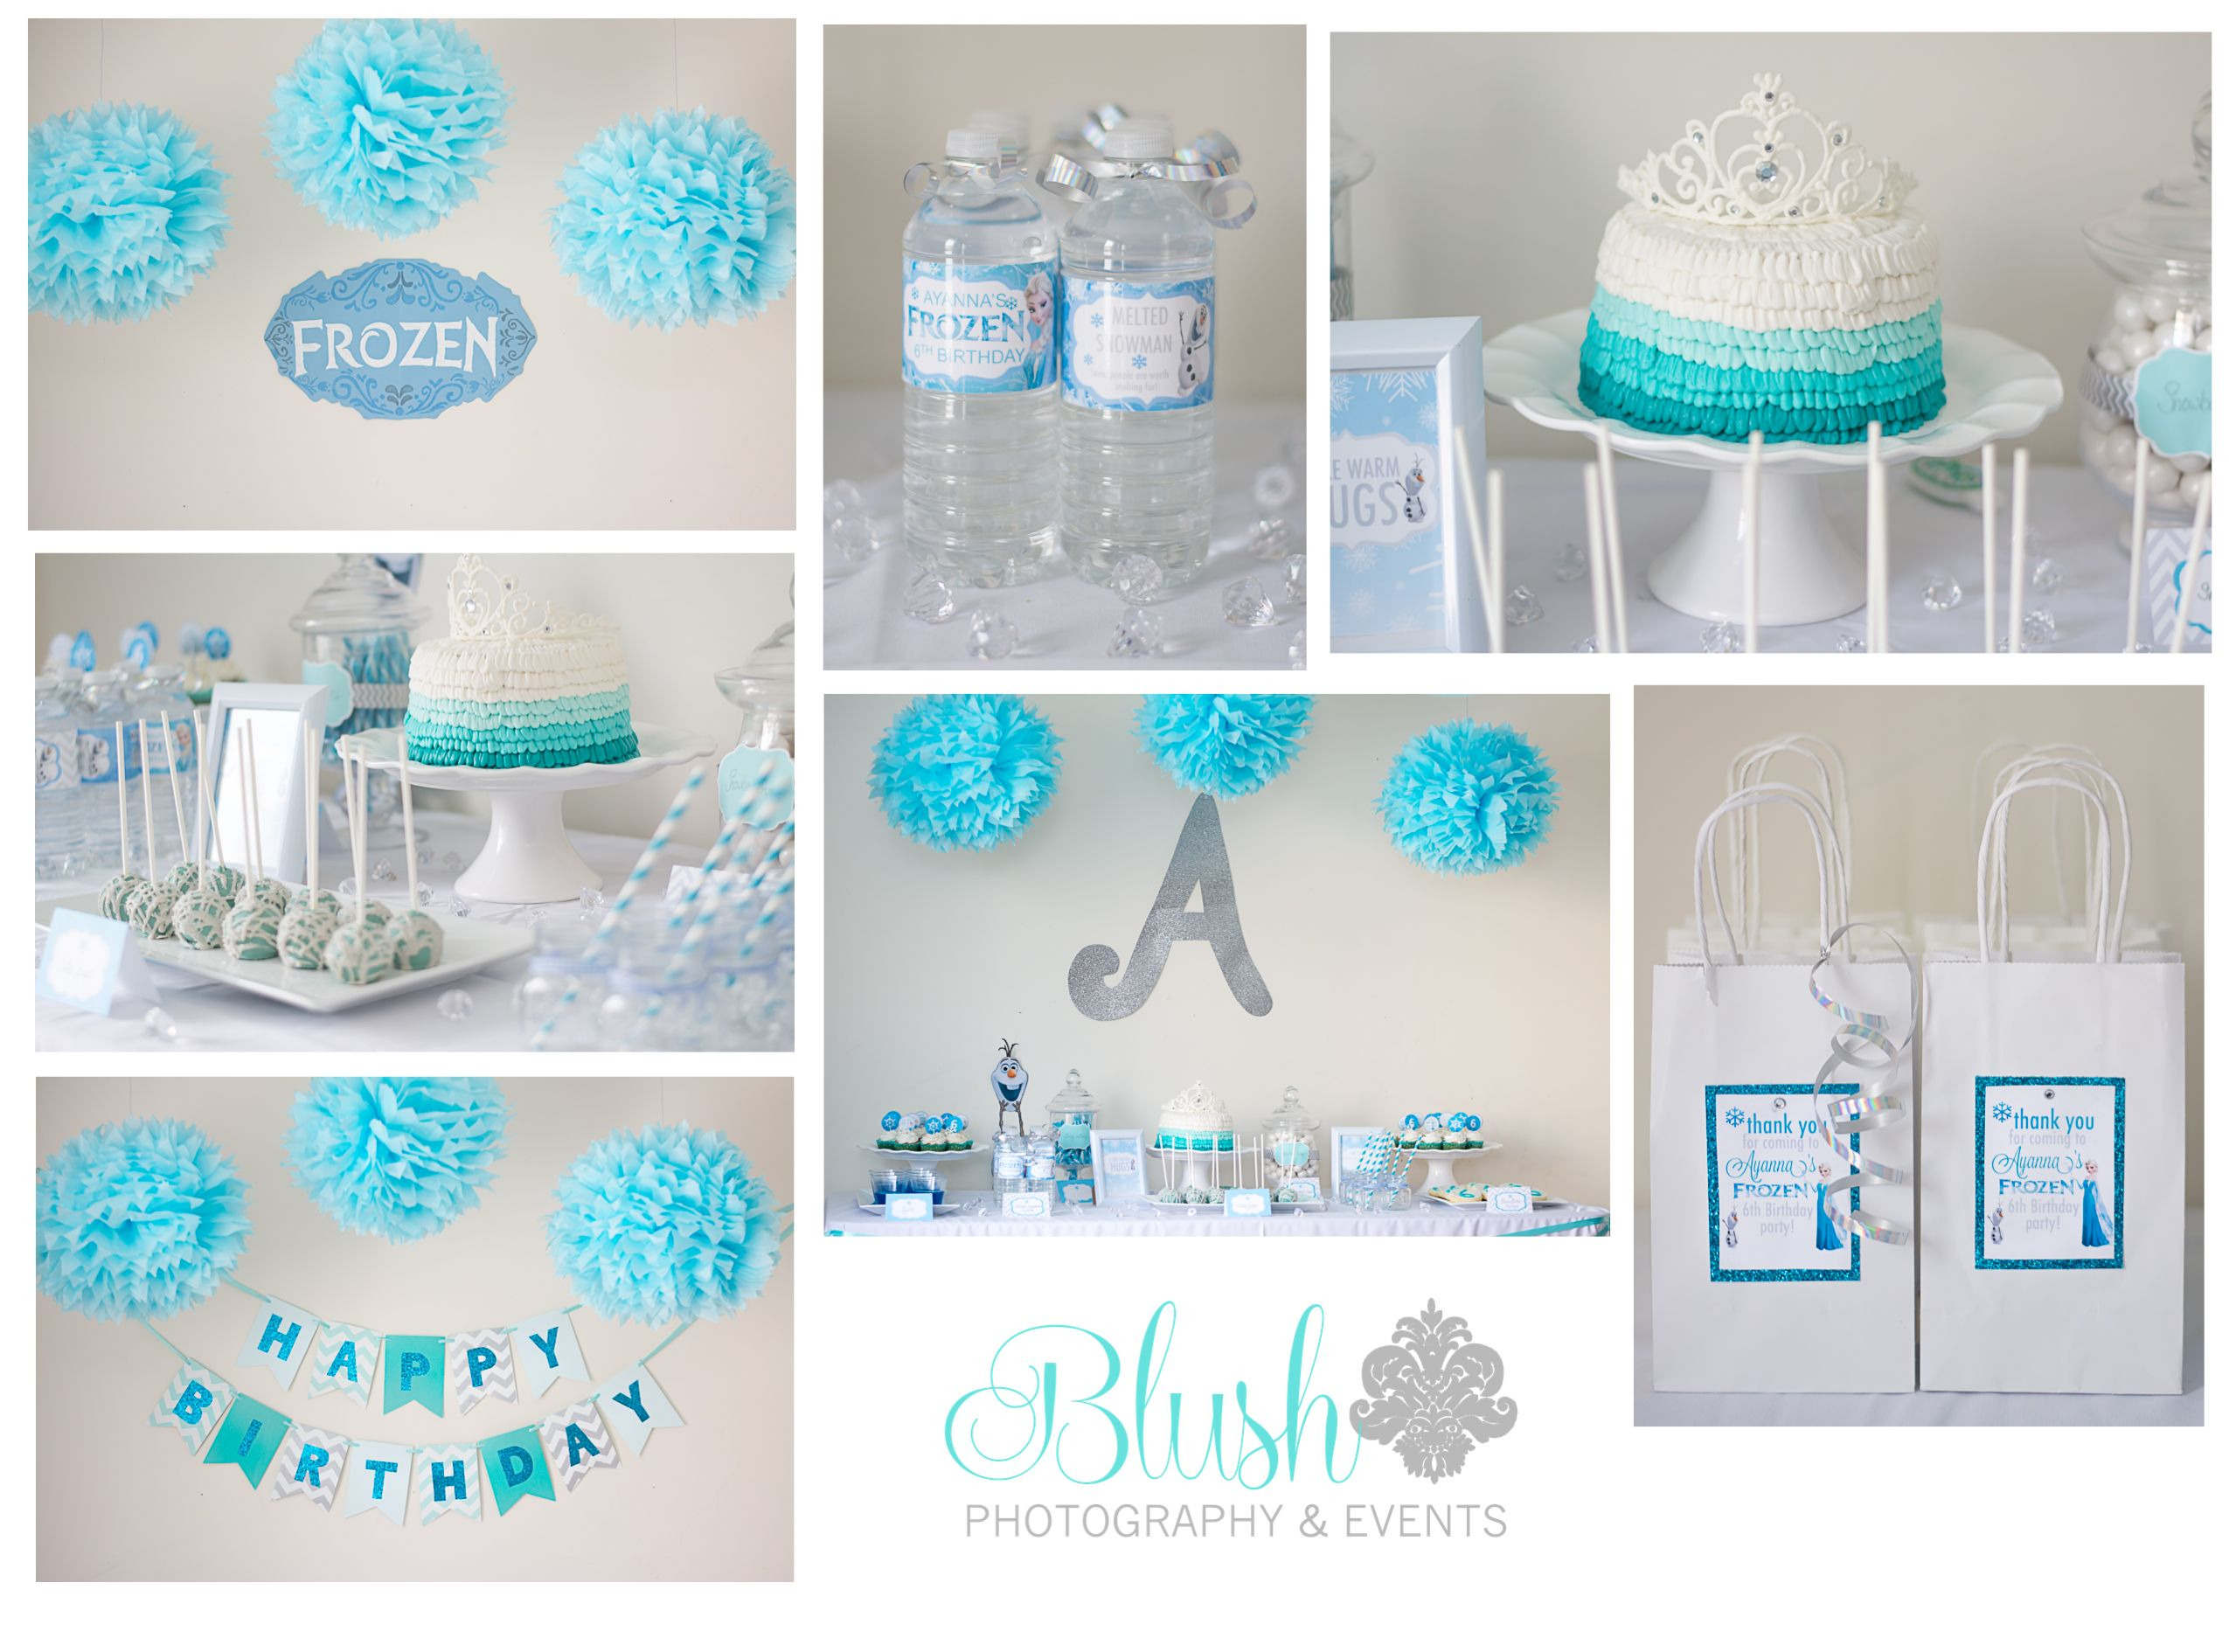 Disney Frozen Birthday Party Designed Styled By Blush Photography Events Event Planner